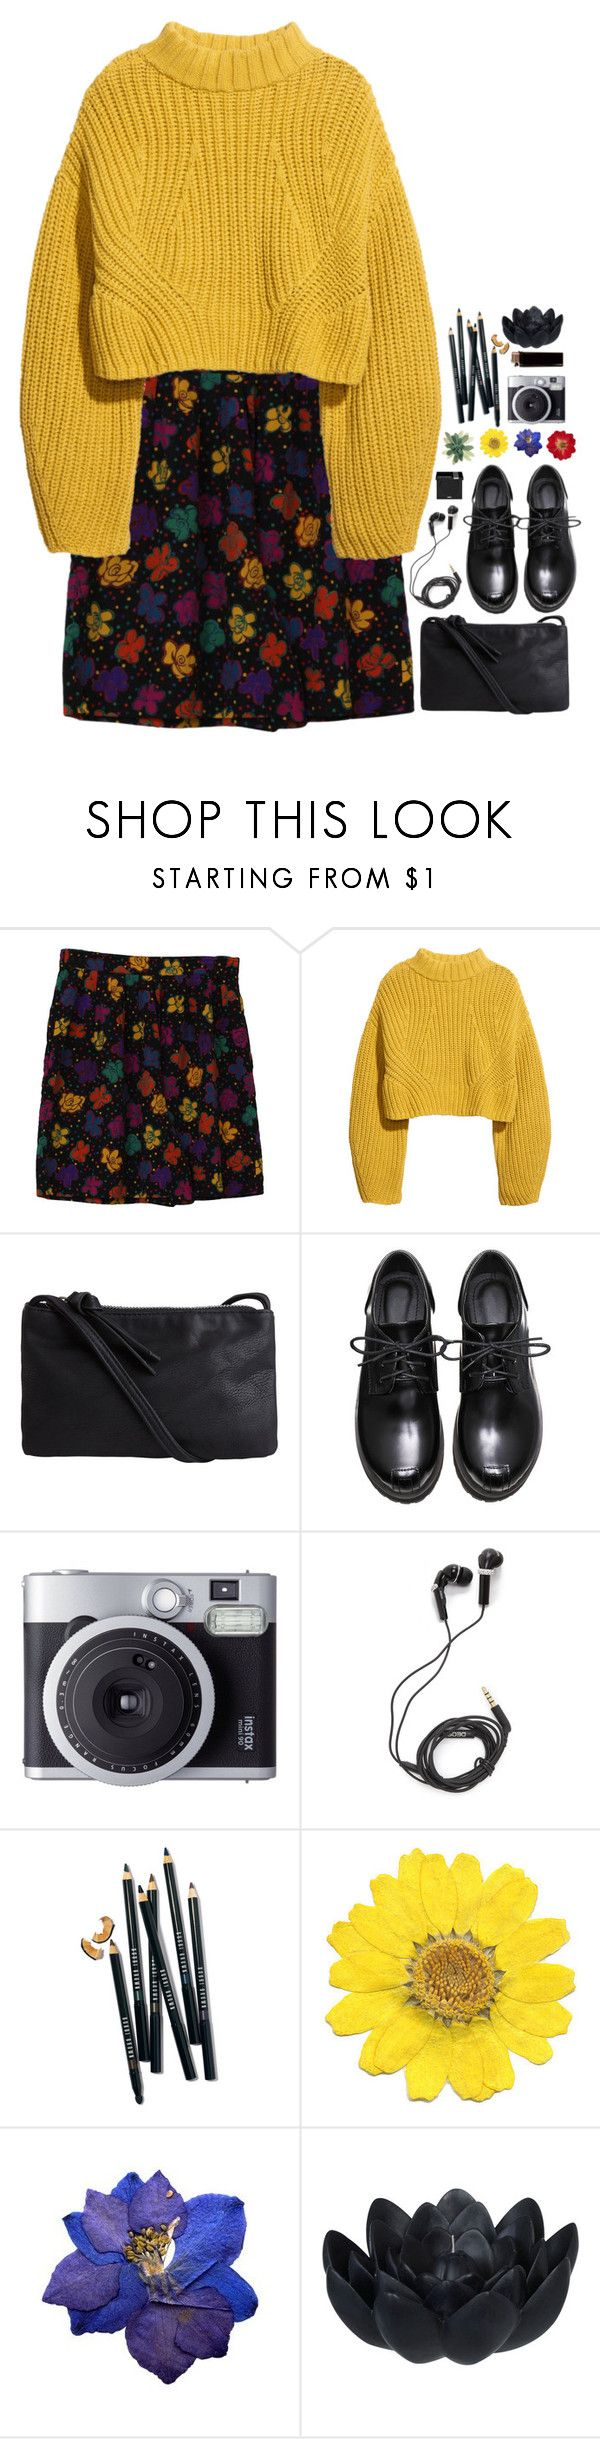 """""""she said my spirit doesn't move like it did before"""" by tanja-bp ❤ liked on Polyvore featuring Worthington, H&M, Pieces, Fujifilm, DEOS, Bobbi Brown Cosmetics, Grace, Sia and MAKE UP FOR EVER"""